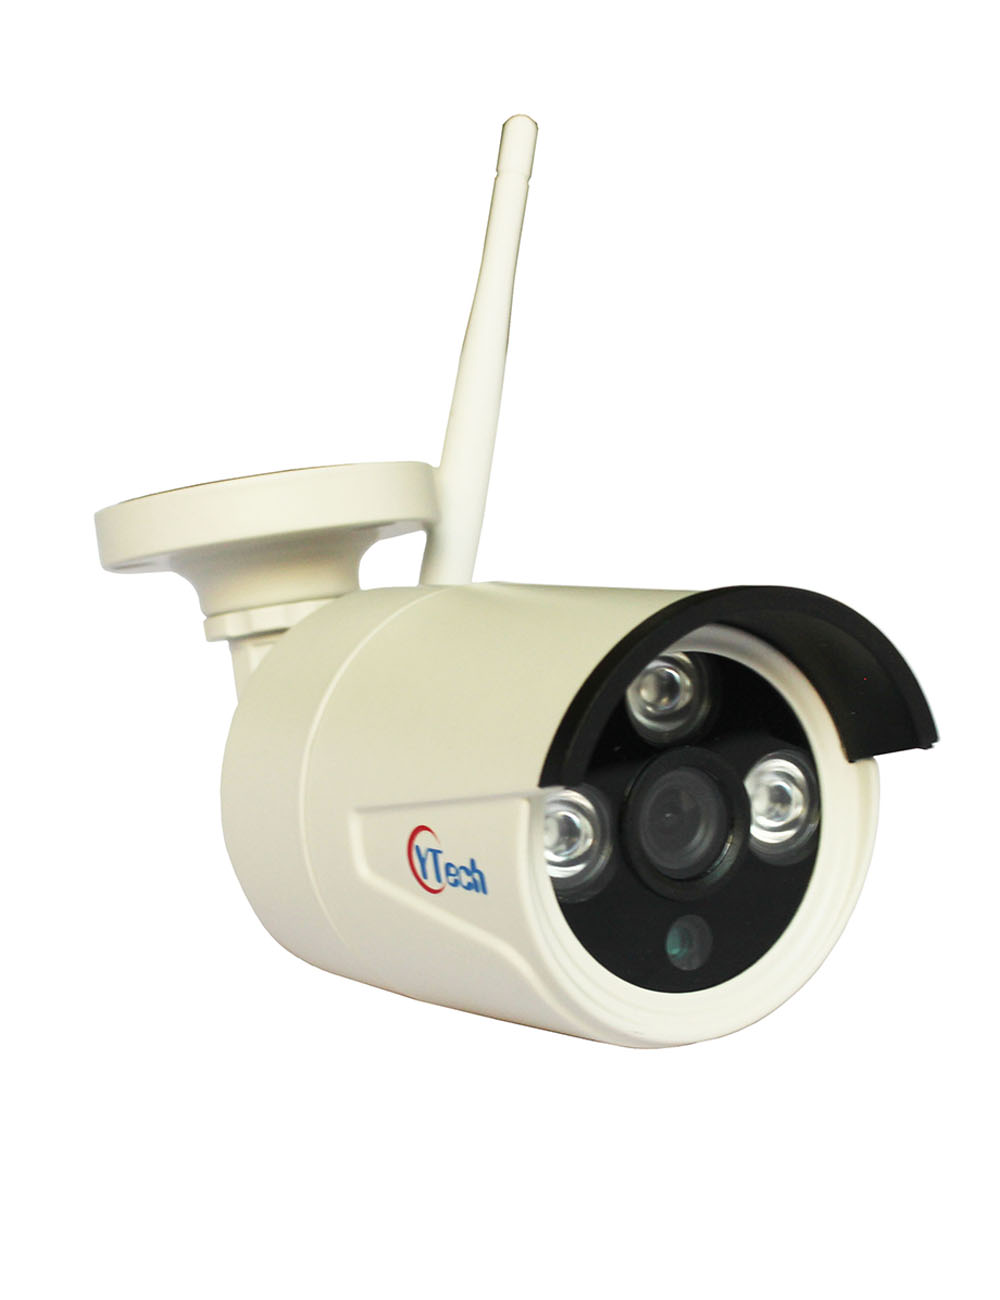 40M IR 1.3M Pixels HD Wireless Wifi Outdoor Waterproof IP Camera